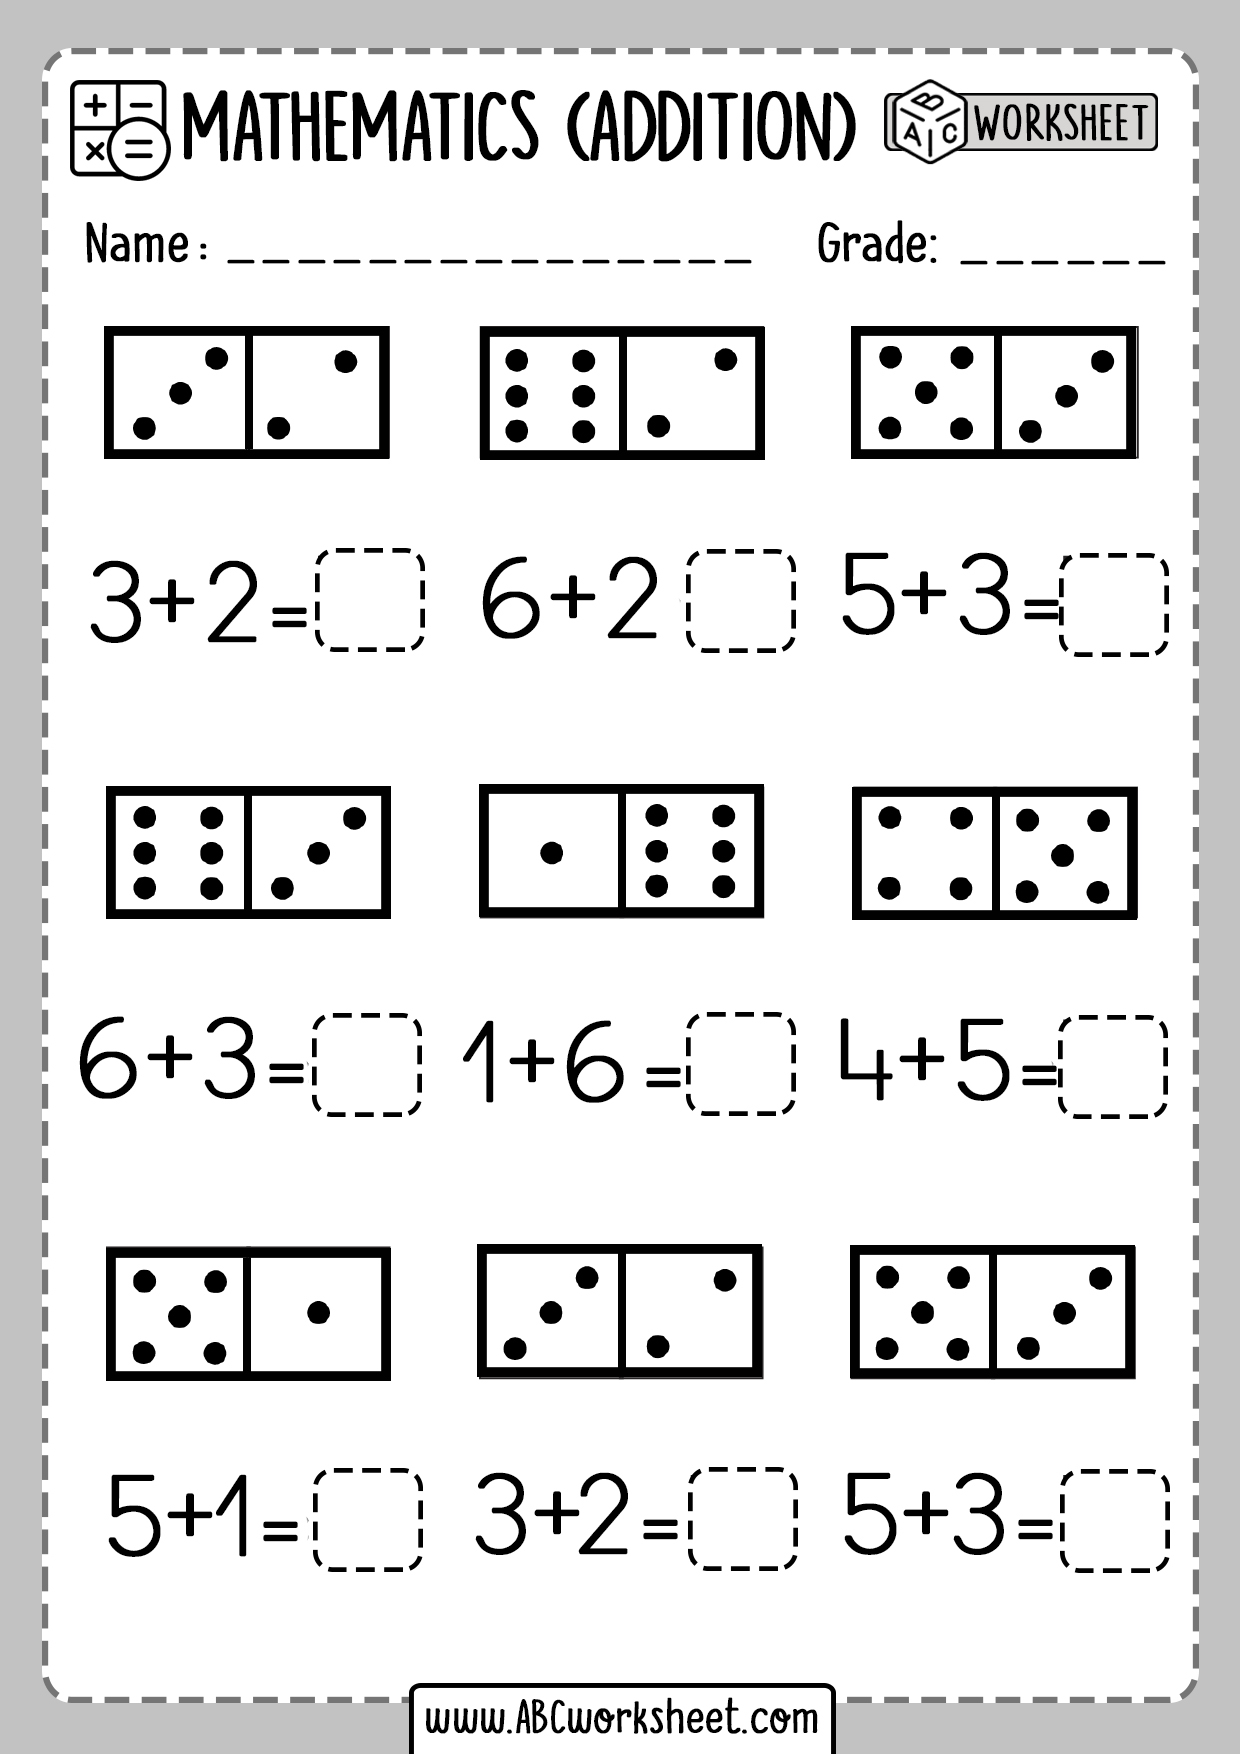 Domino Addition Worksheet